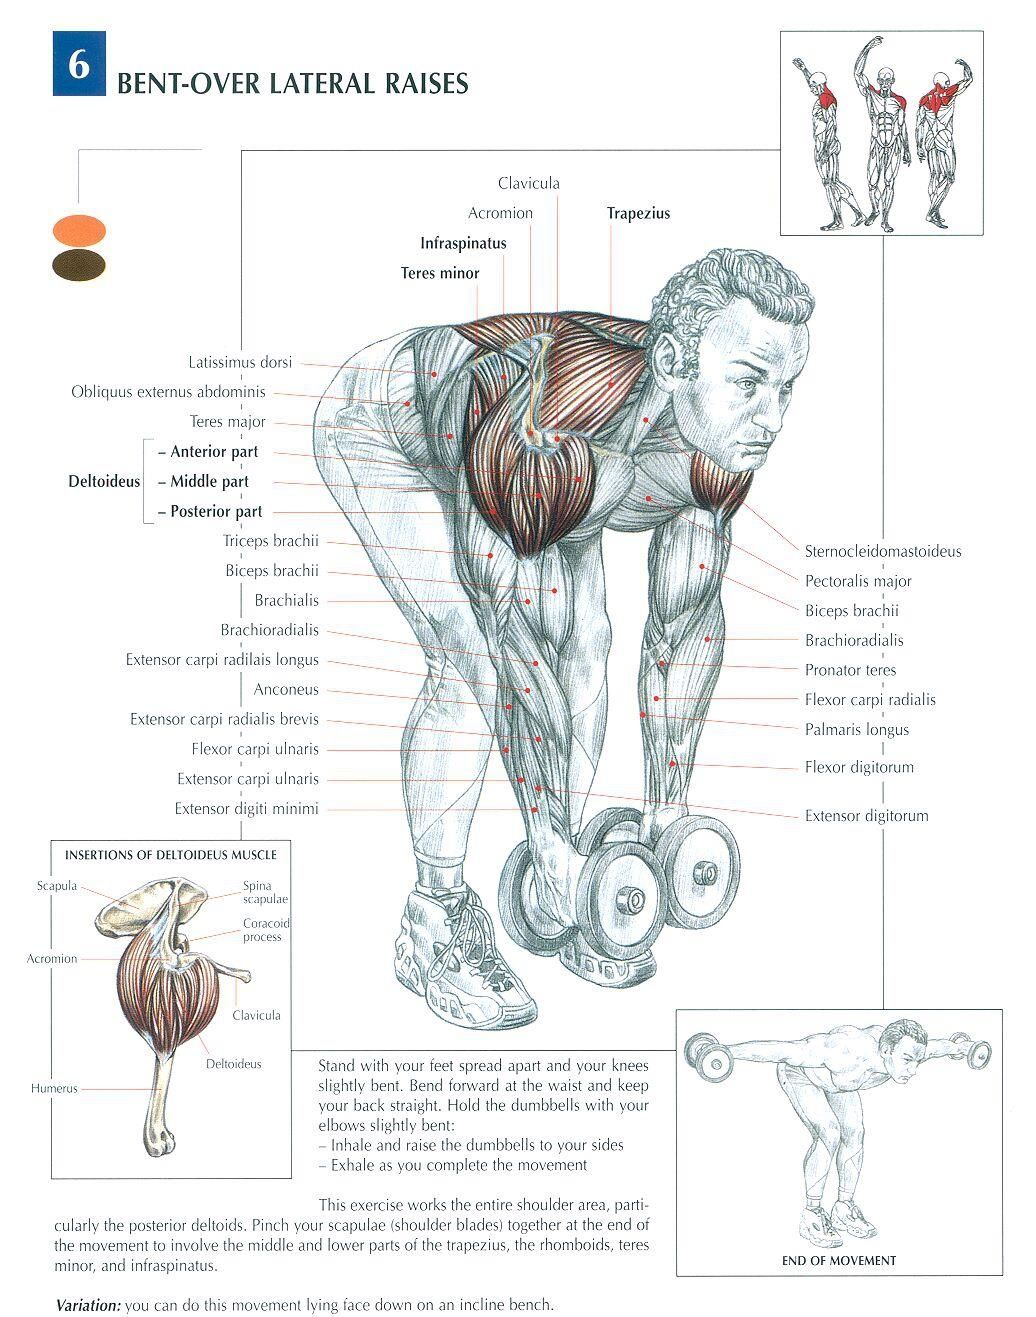 bent over lateral raises health fitness exercises diagrams body muscles gym bodybuilding shoulders [ 1036 x 1317 Pixel ]